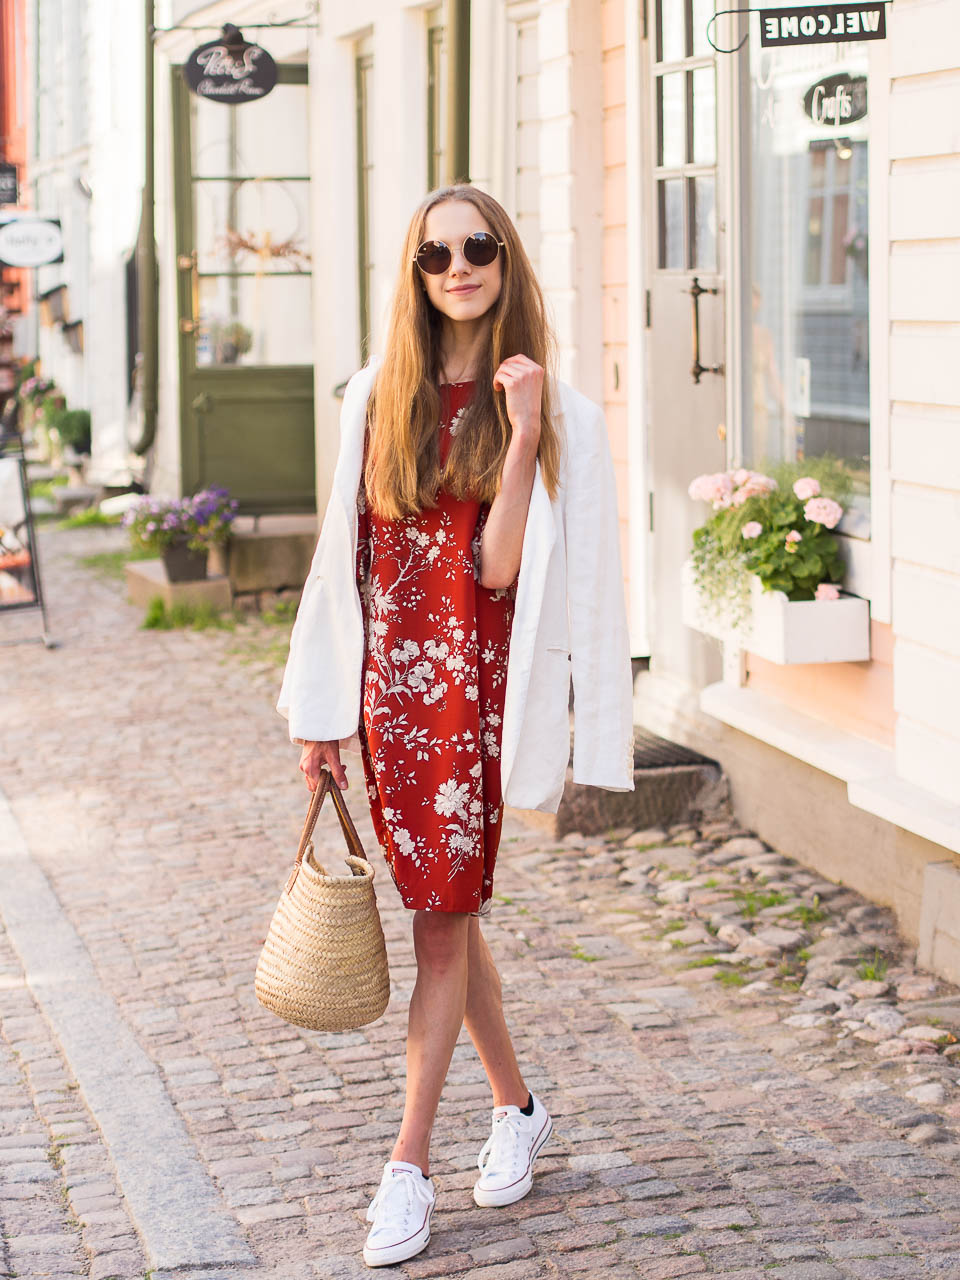 fashion-blogger-summer-outfit-linen-blazer-floral-dress